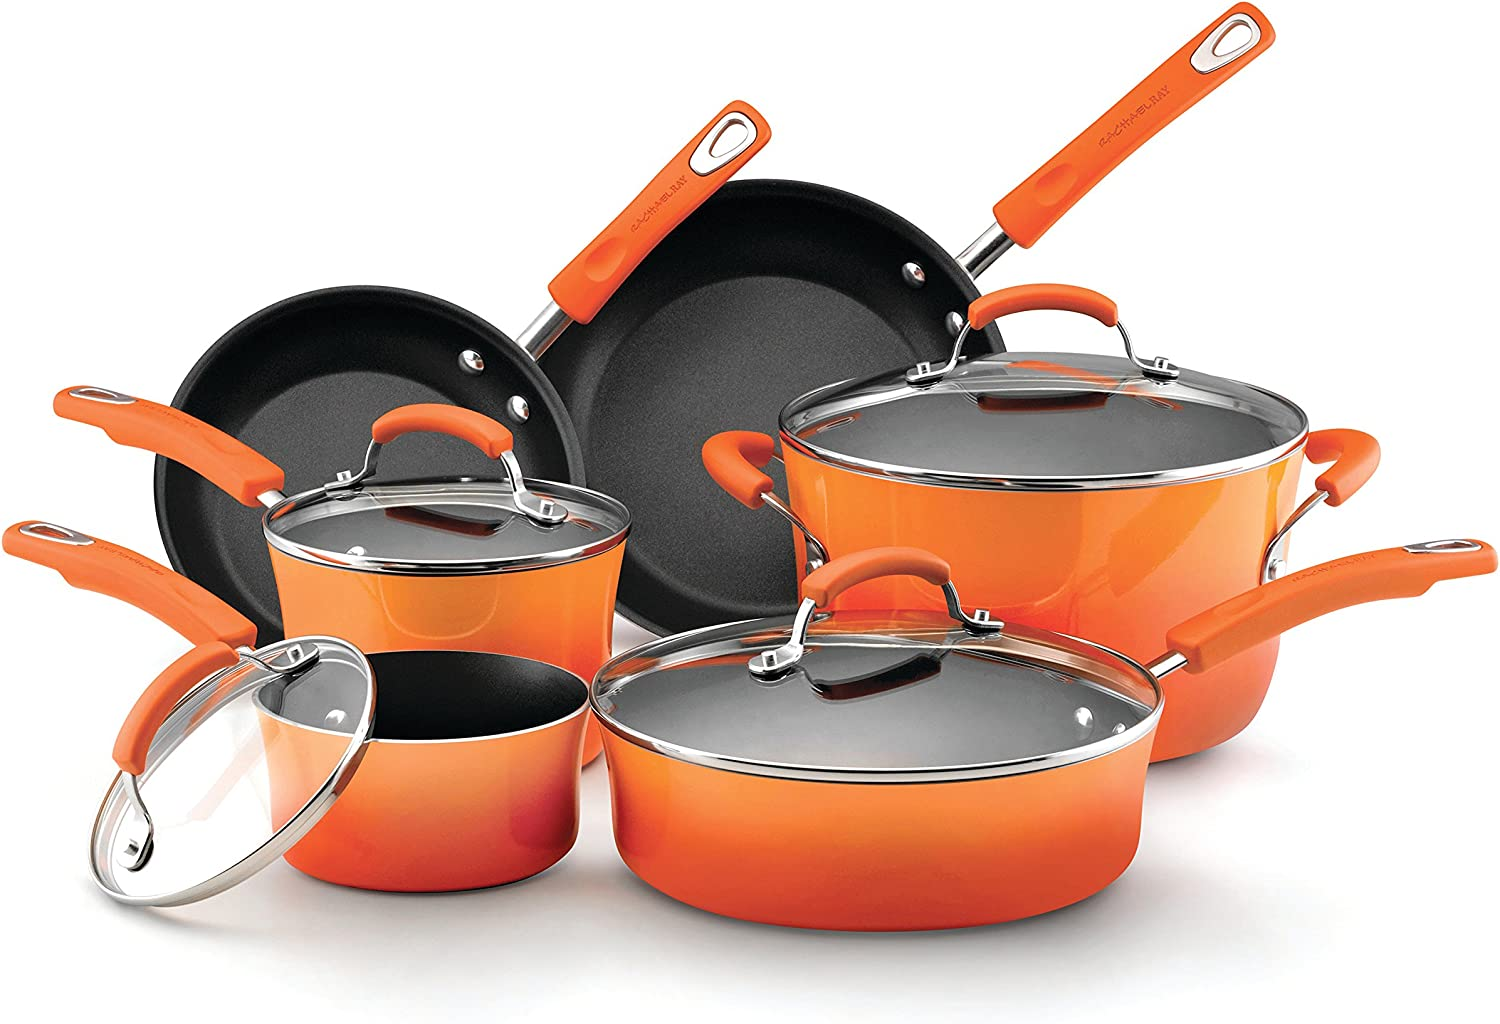 Rachael Ray Brights Cookware Pots and Pans. Pots & Pans Cookware Sets Healthiest Cookware.